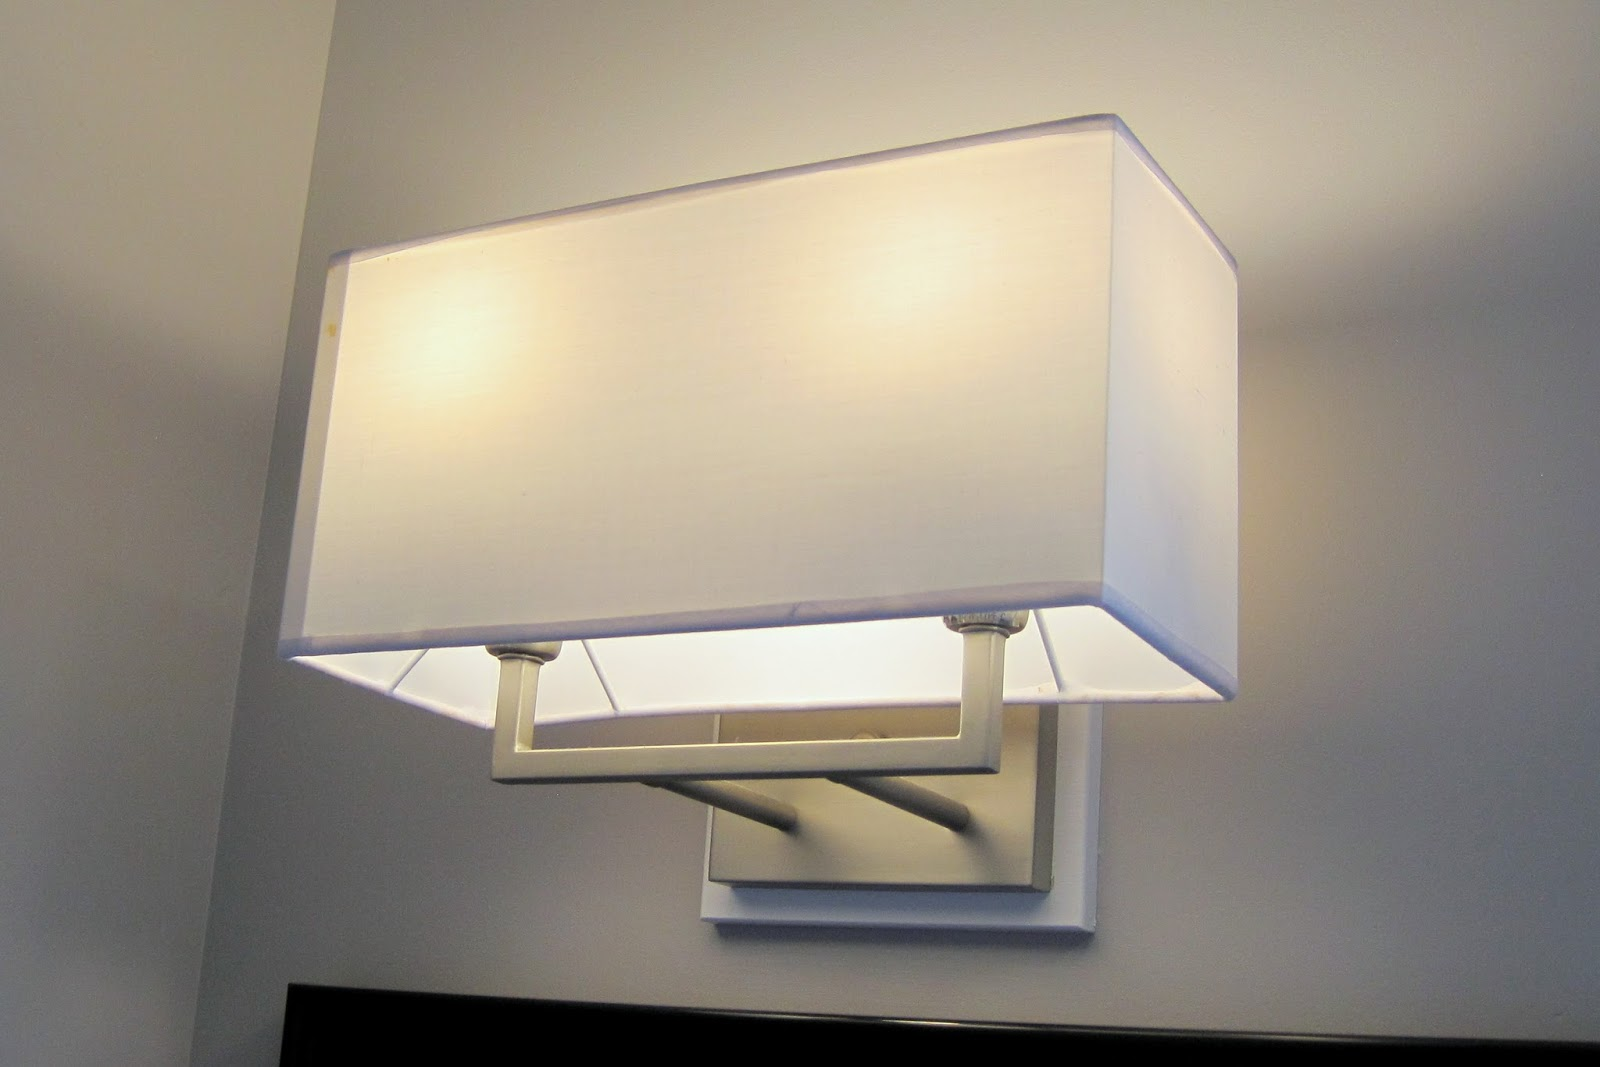 Great Bathroom Vanity Lighting modern pendant lighting modern bathroom. span bath bartech